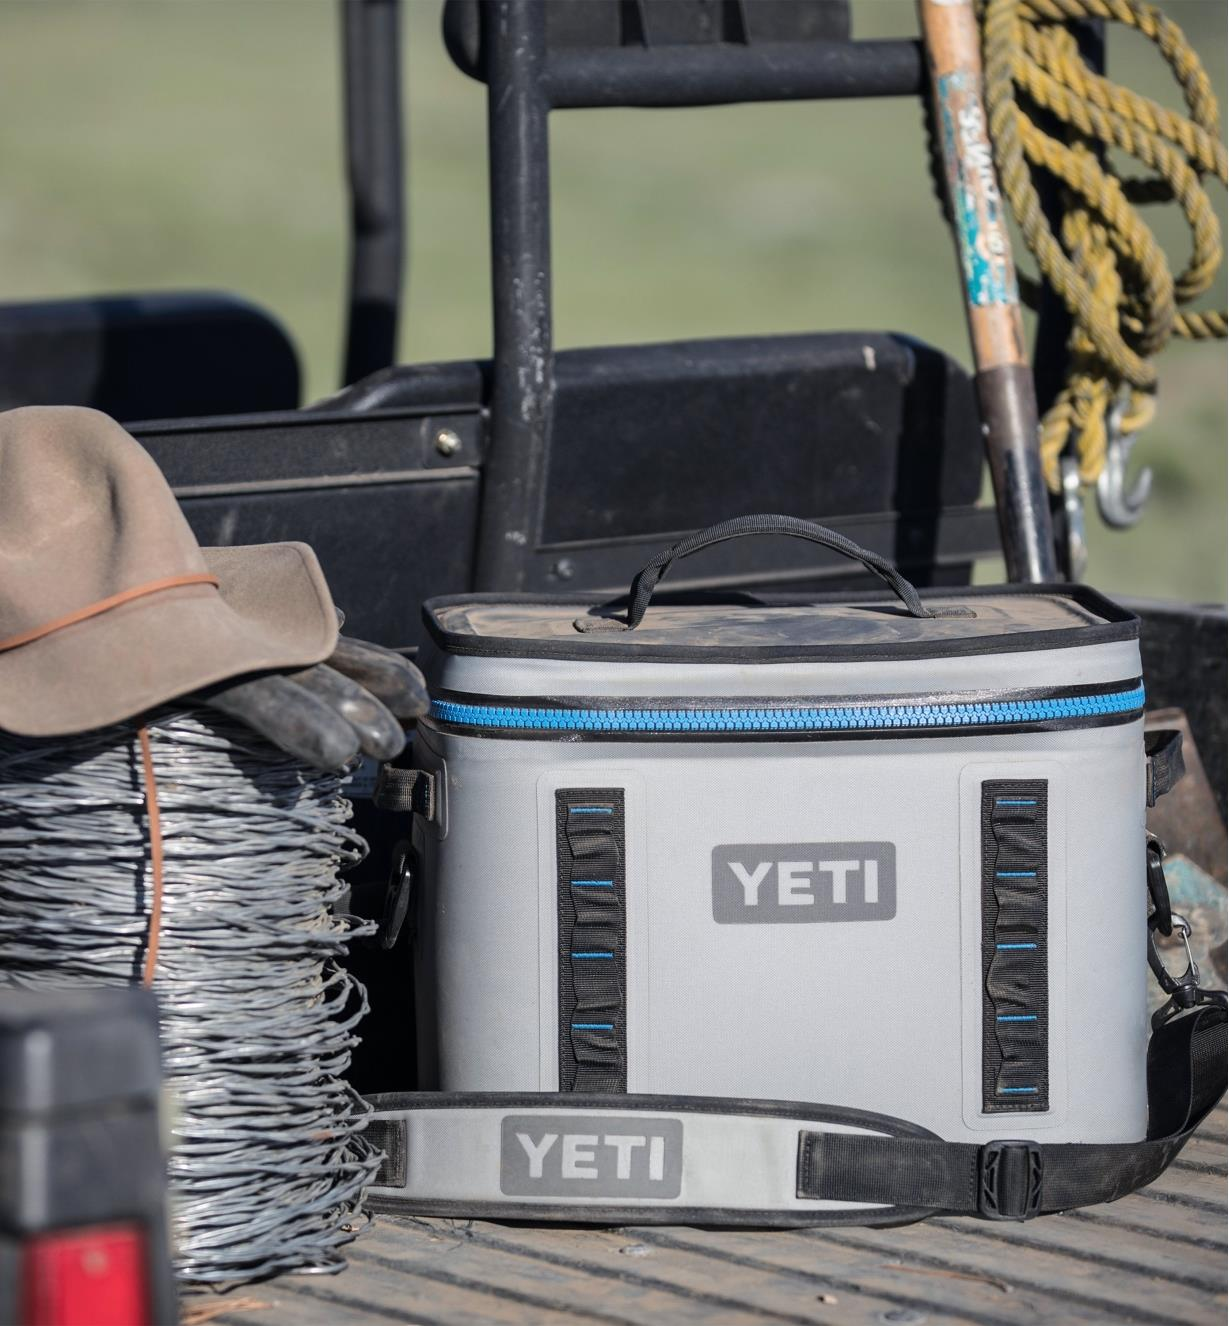 74K0020 - Yeti Hopper Flip 18 Soft-Sided Cooler, Gray